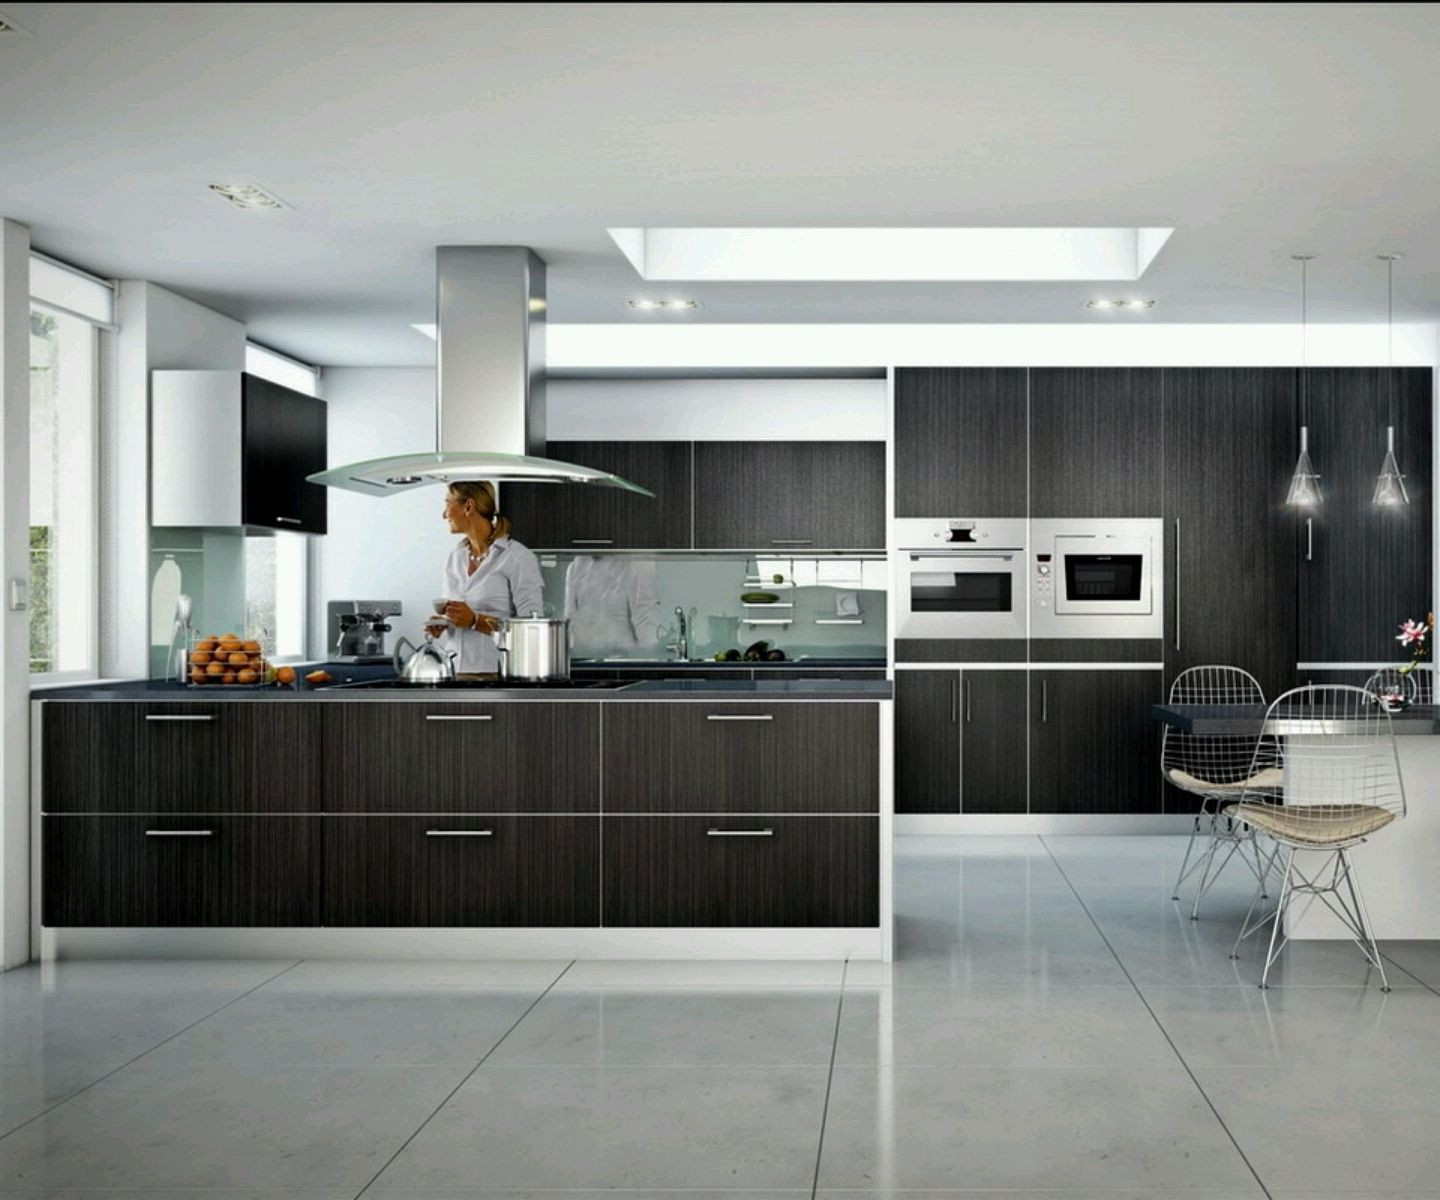 Pictures Of Modern Kitchen: Kitchen Renovation Trends 2015; 27+ Ideas To Inspire